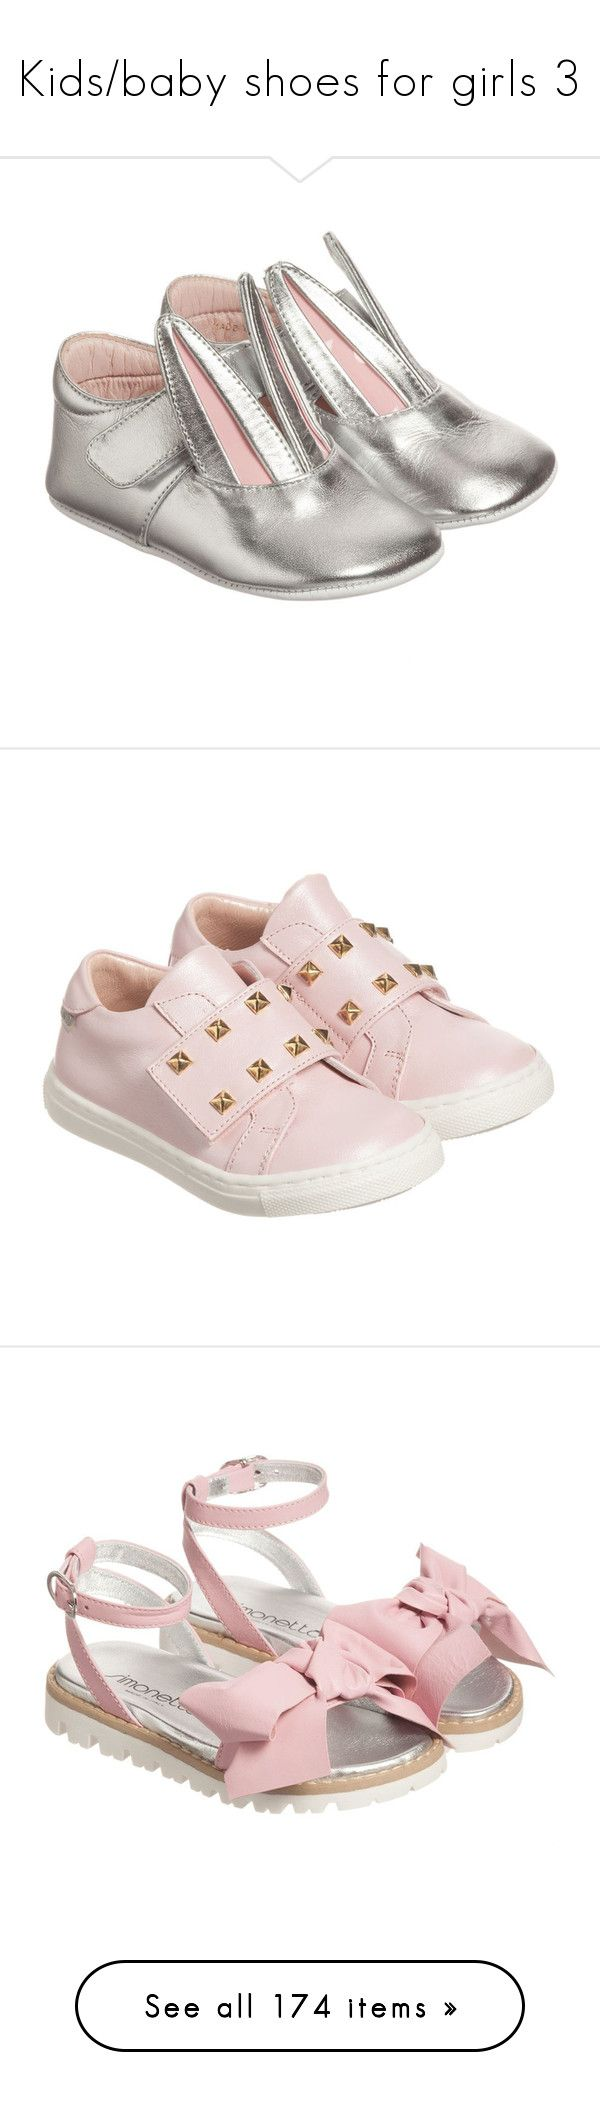 """""""Kids/baby shoes for girls 3"""" by julieselmer ❤ liked on Polyvore featuring light blue, girls, shoes, bunny, minna parikka, pink, white, dark blue, beige and brown"""